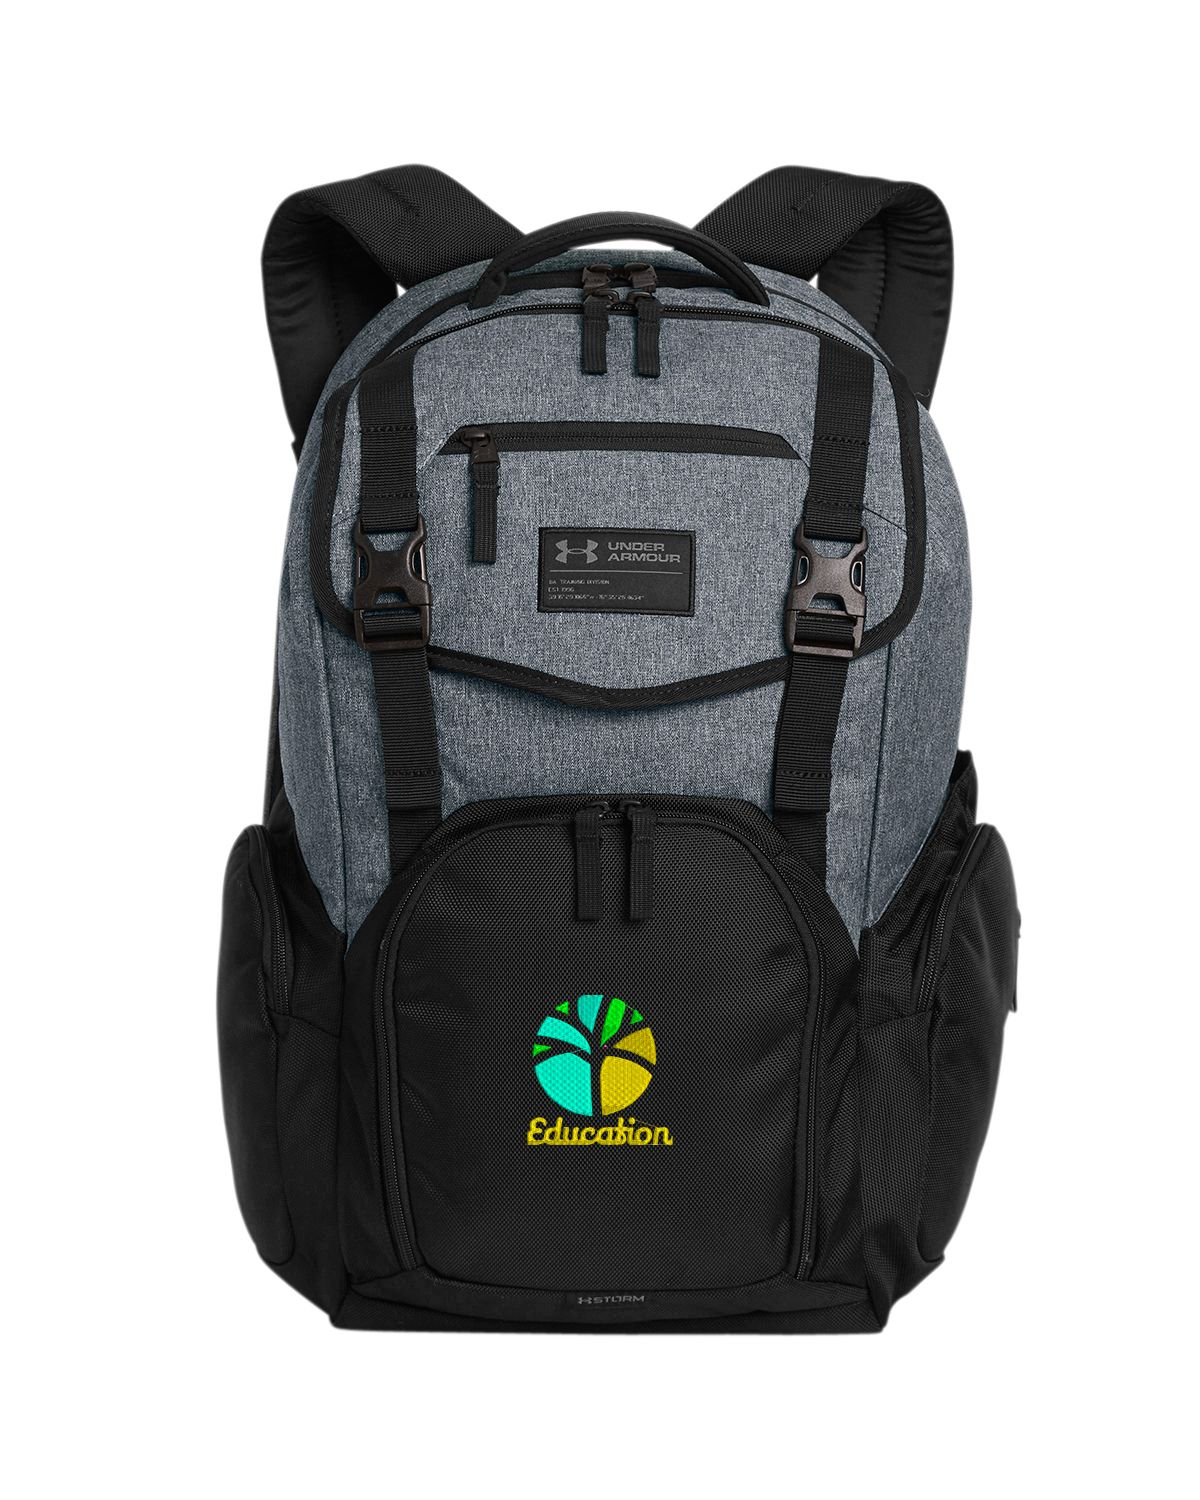 4f420a94322 Under Armour 1319910 Corporate Coalition Backpack - Free Shipping ...